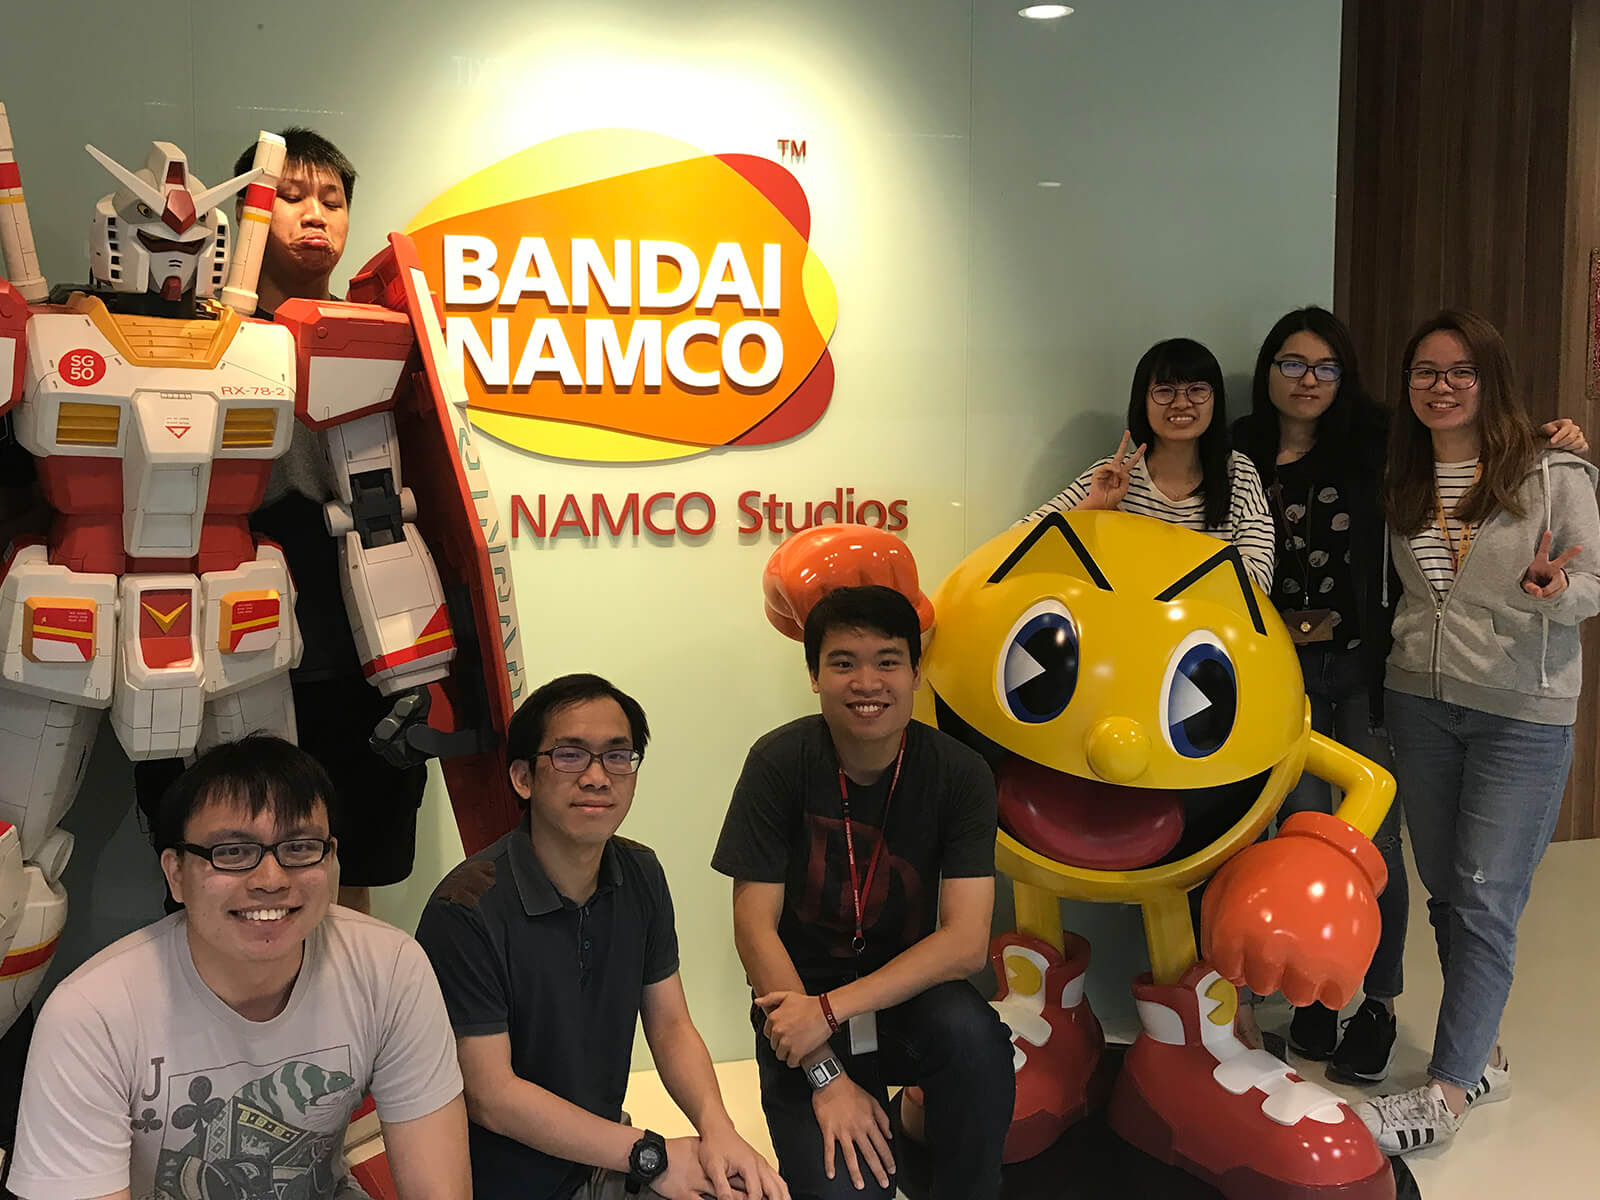 Group photo of eight DigiPen alumni in the lobby of Bandai Namco studio, posing by statues of Pac-Man and a mecha robot.